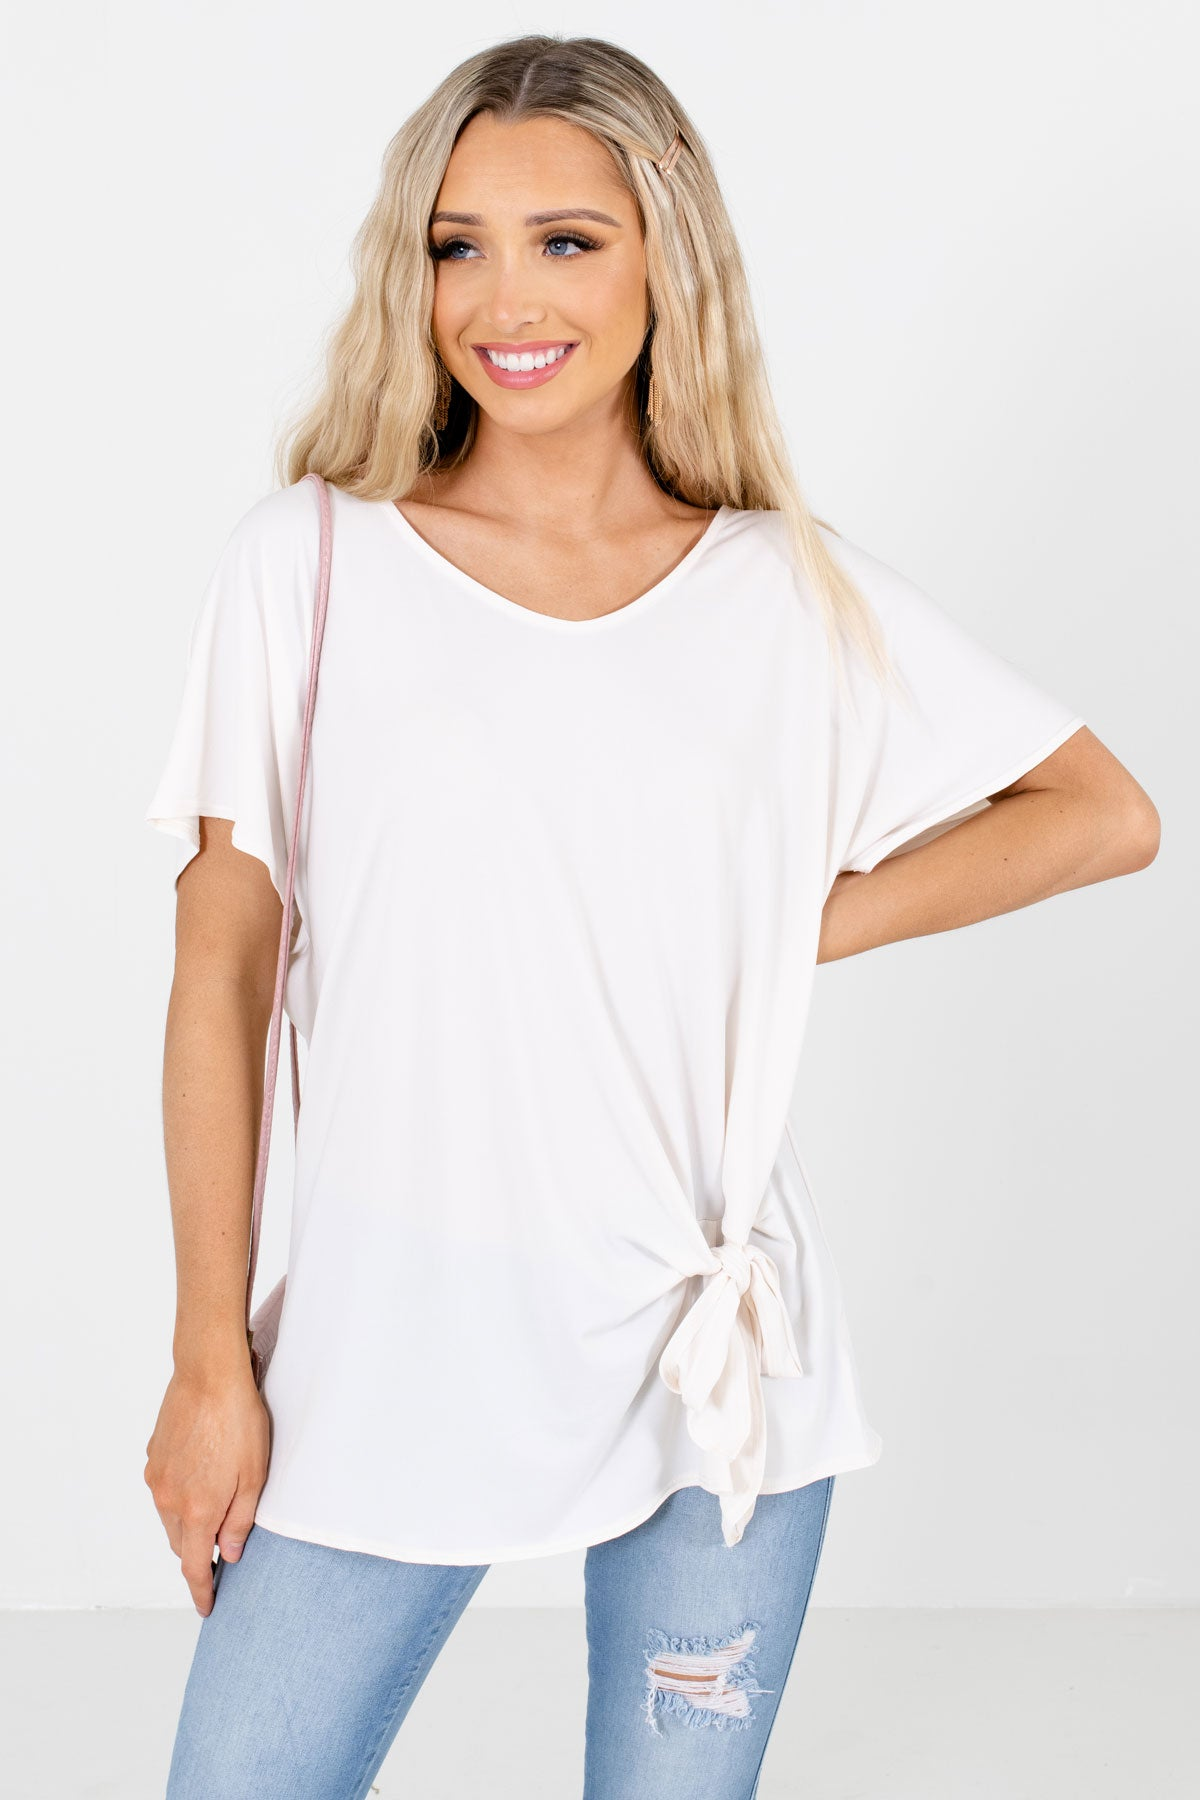 White Self-Tie Detail Boutique Blouses for Women